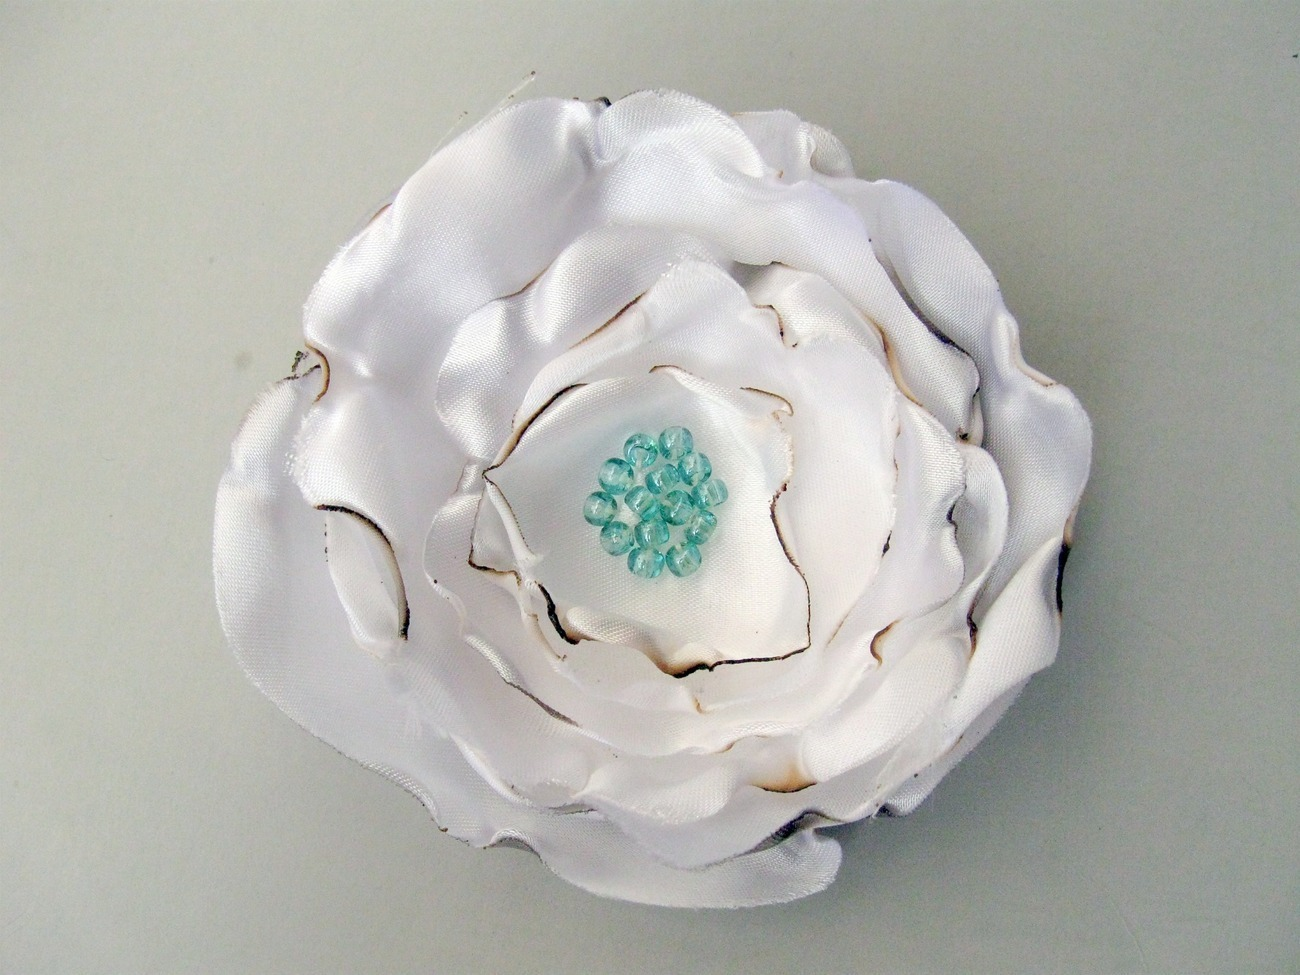 Handmade antiqued white satin flower. Aquamarine blue beads.